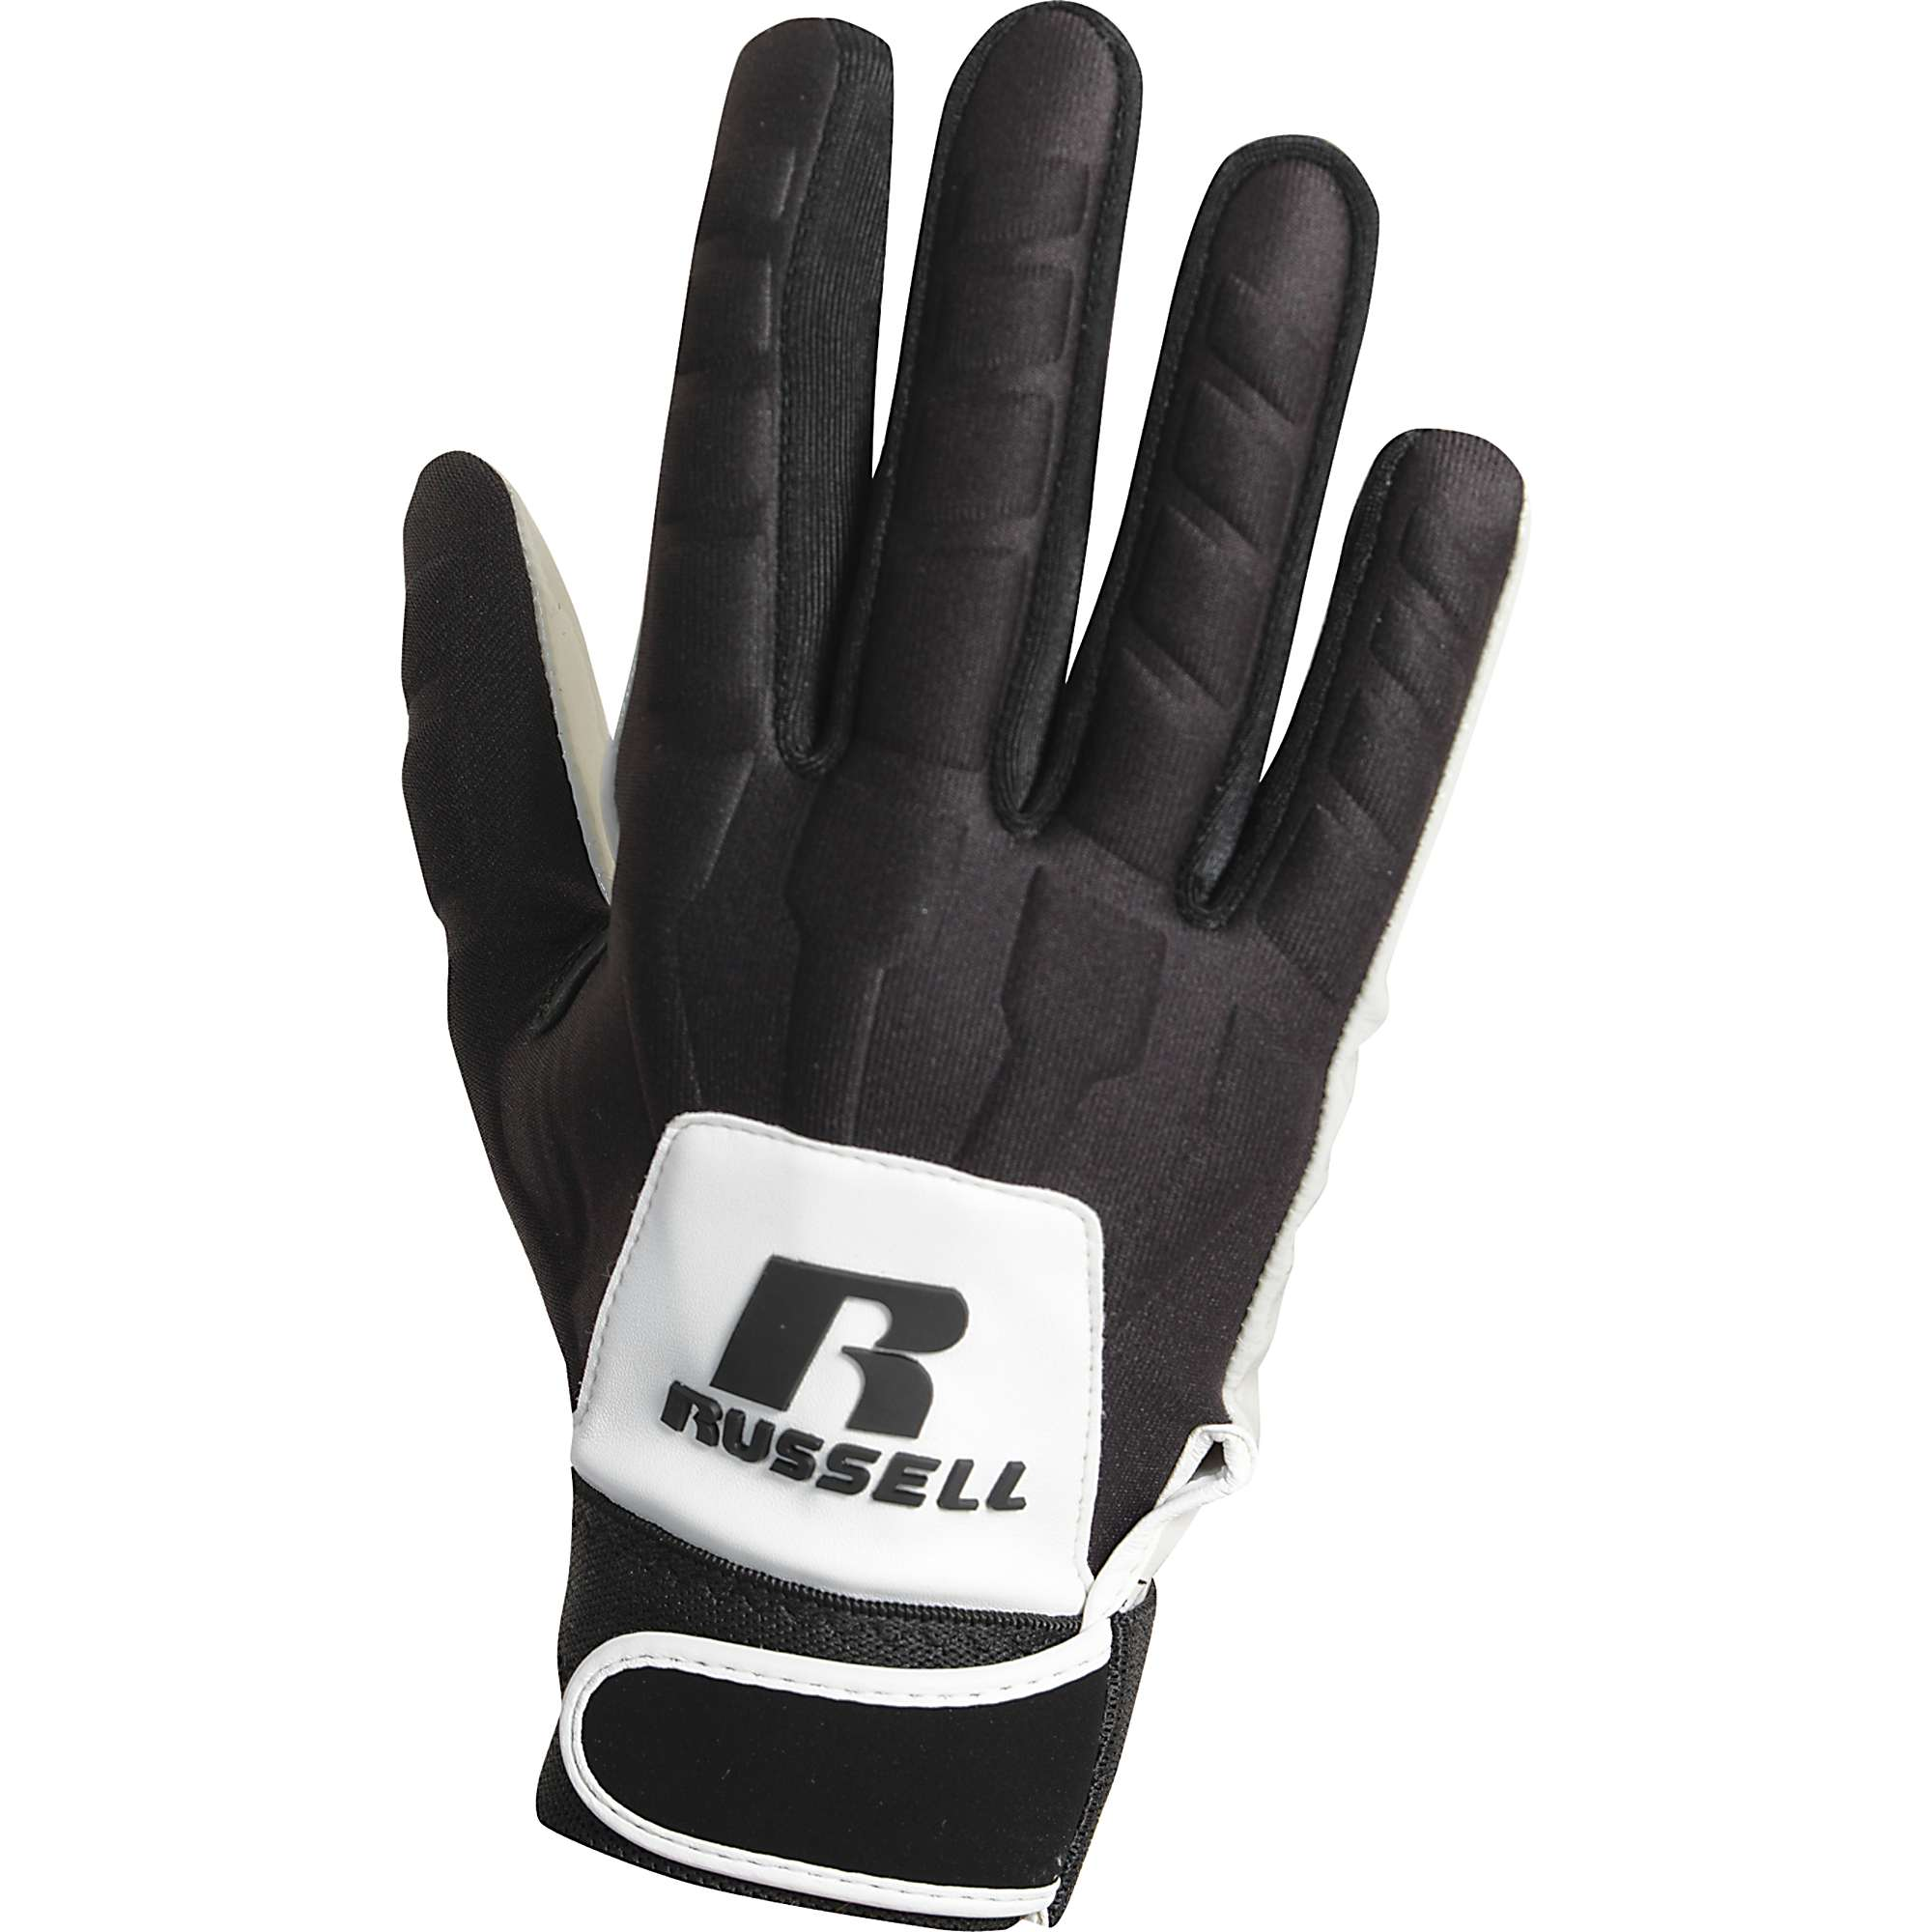 Nike Lineman Gloves Xl: Russell Adult Lineman Football Gloves